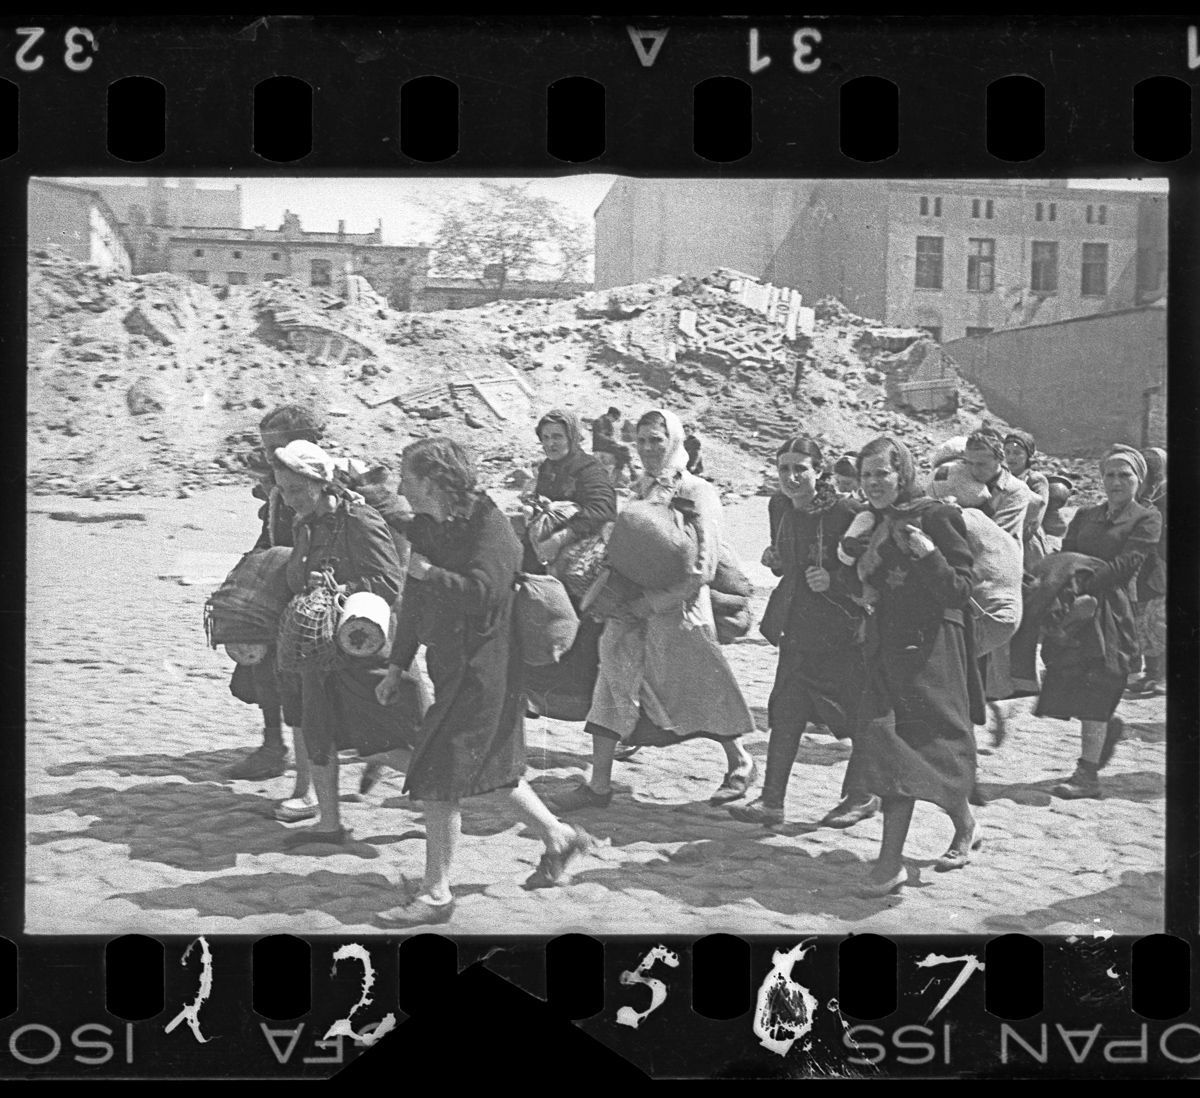 c. 1940-1944 A group of women with sacks and pails, walking past synagogue ruins heading for deportation.